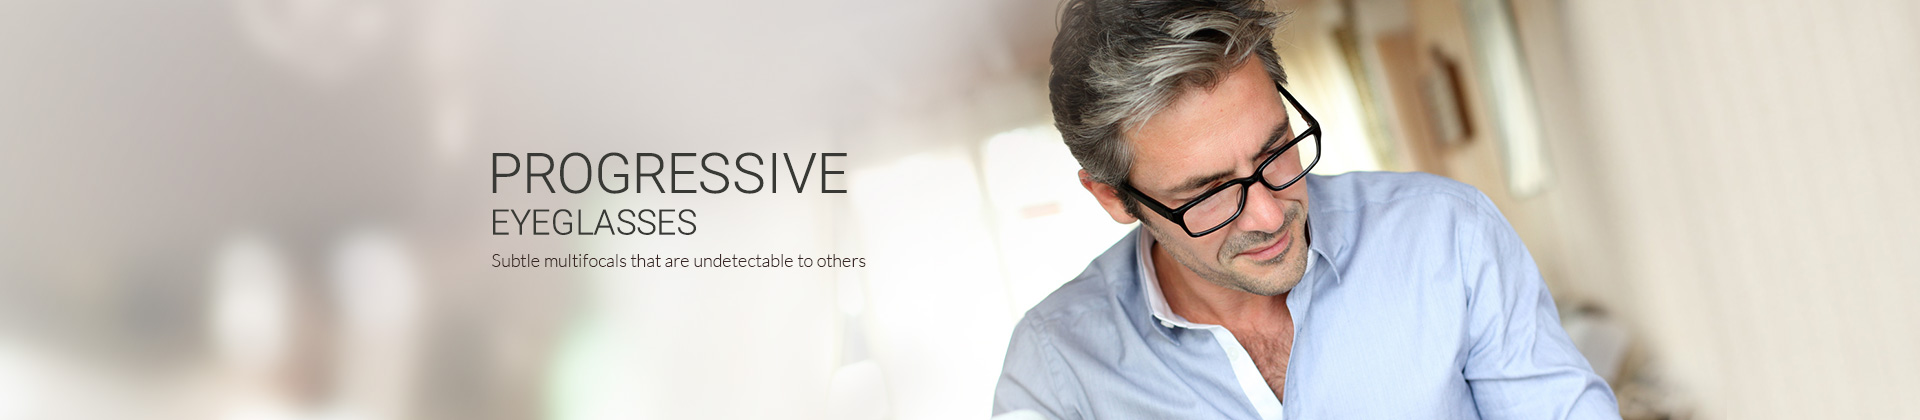 Subtle multifocals that are undetectable to others